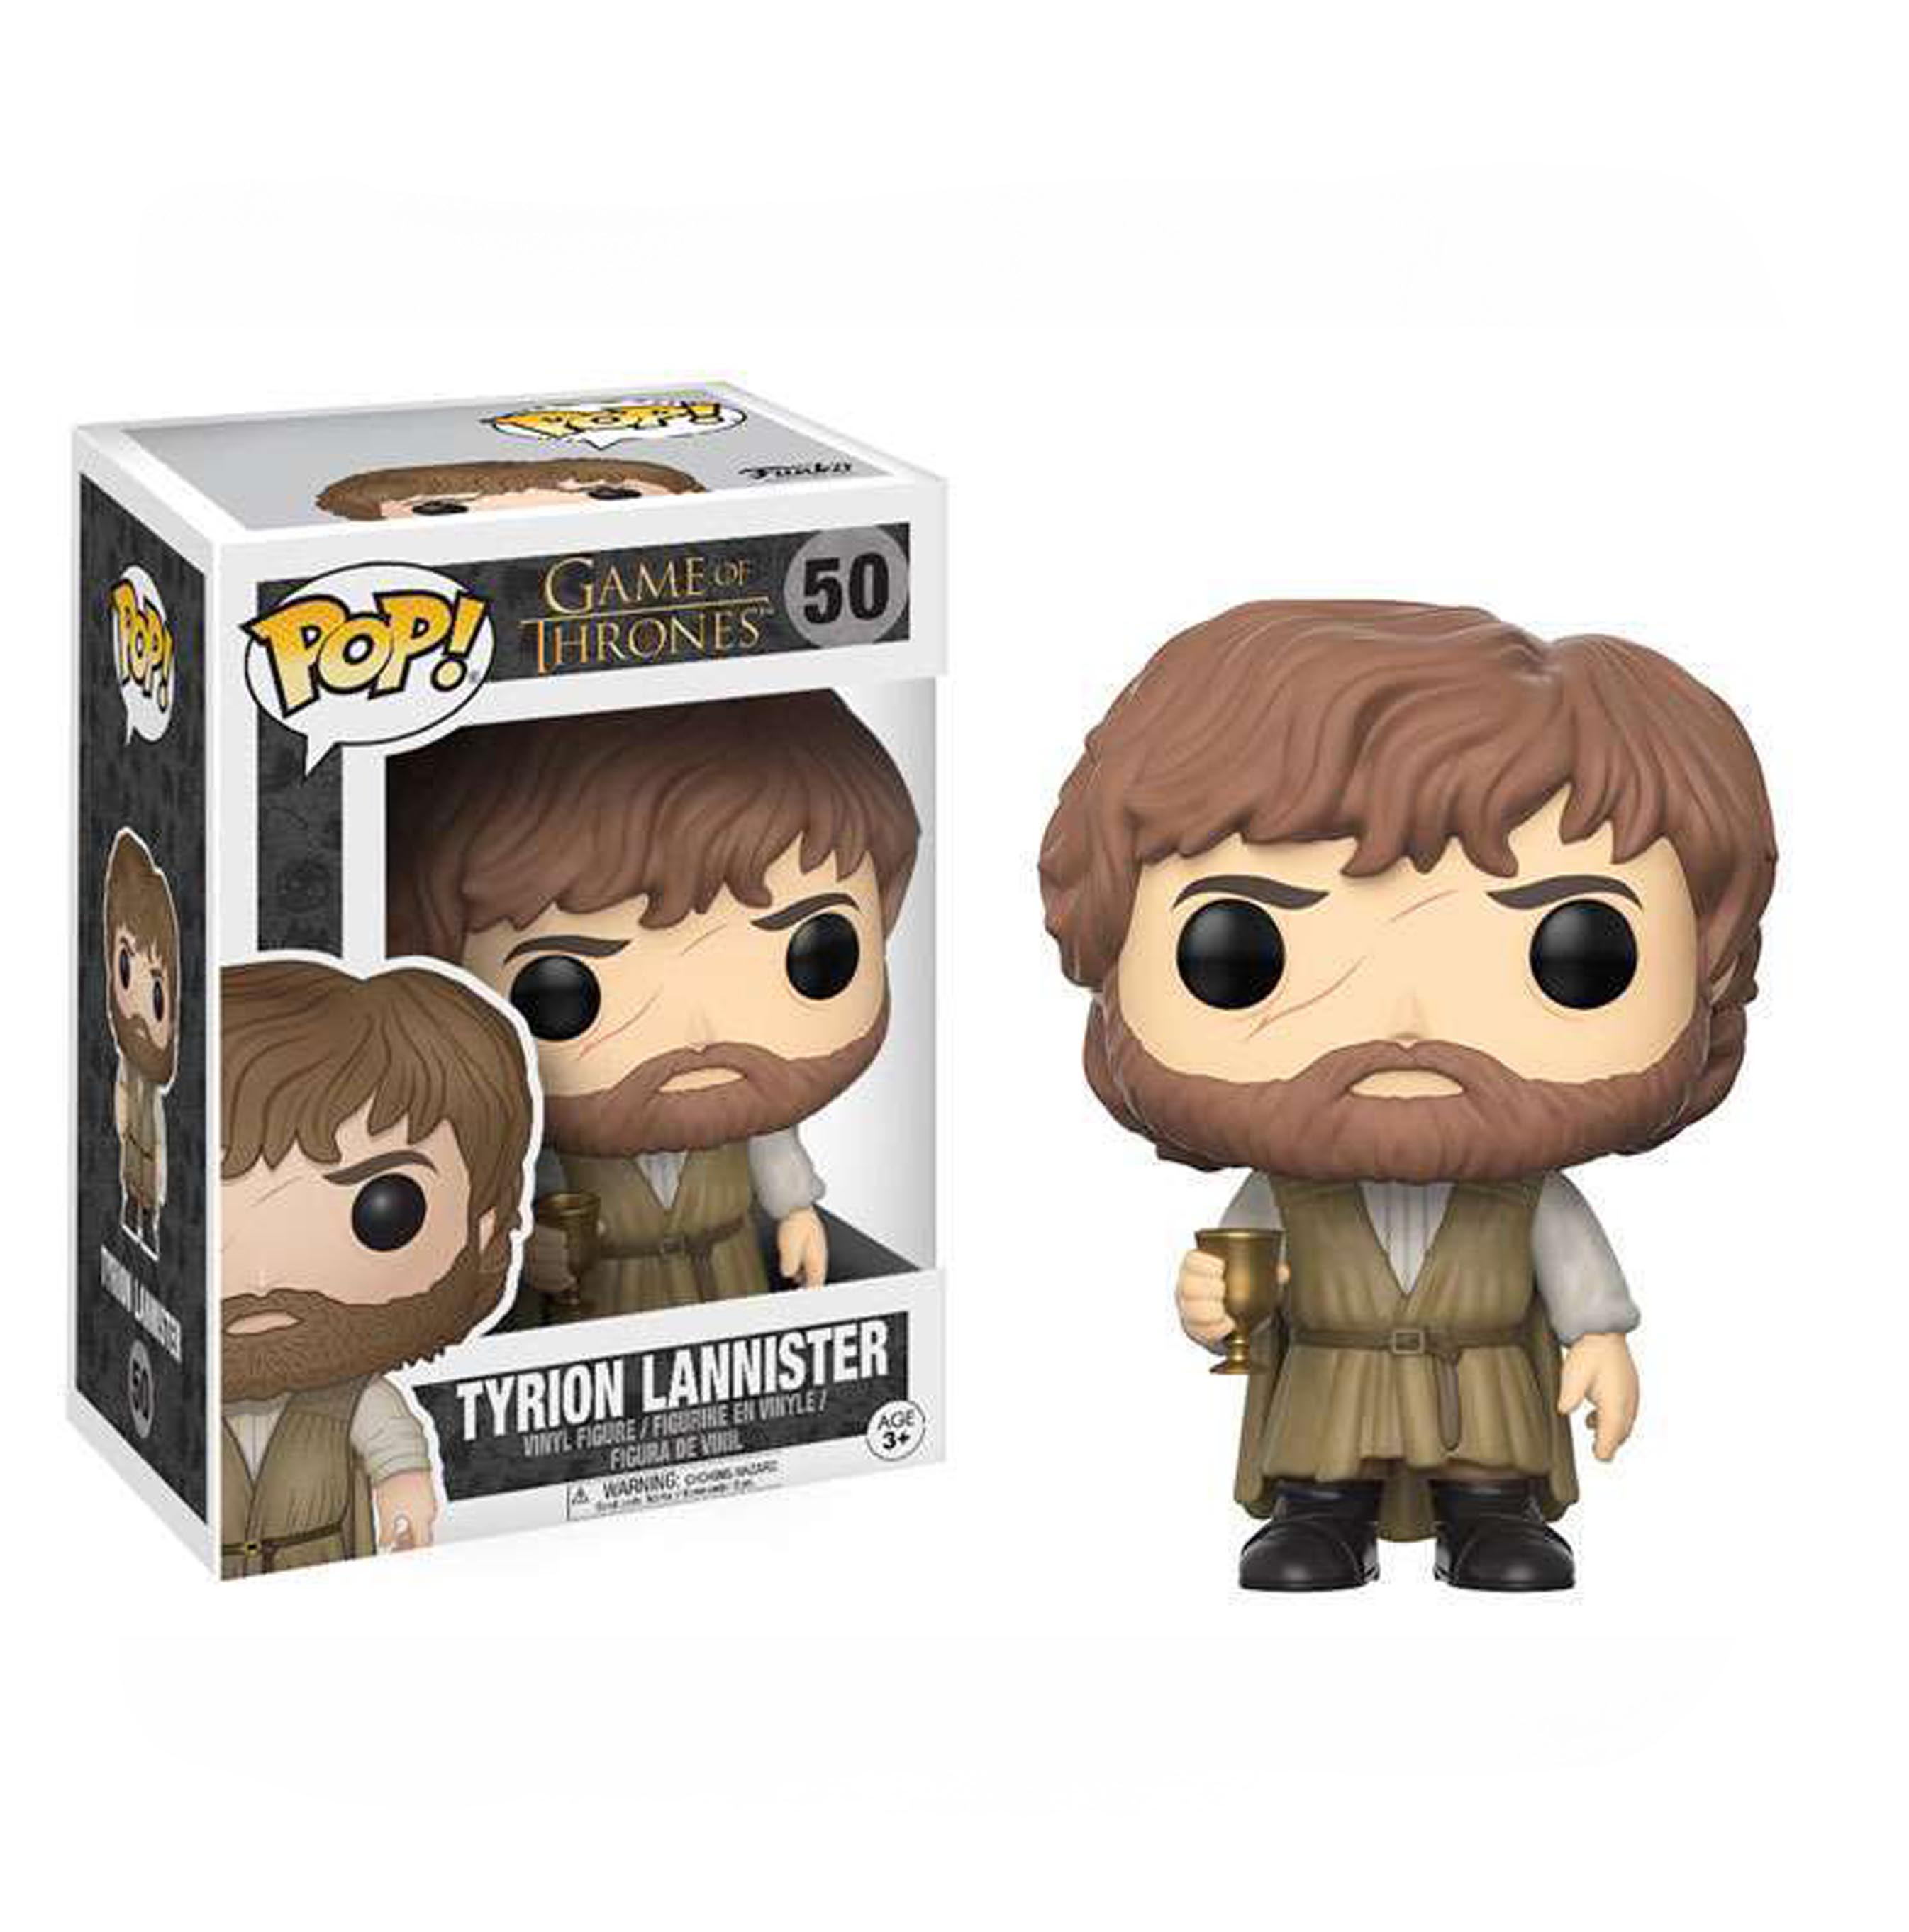 POP! TV Series : Game of Thrones - Tyrion Lannister